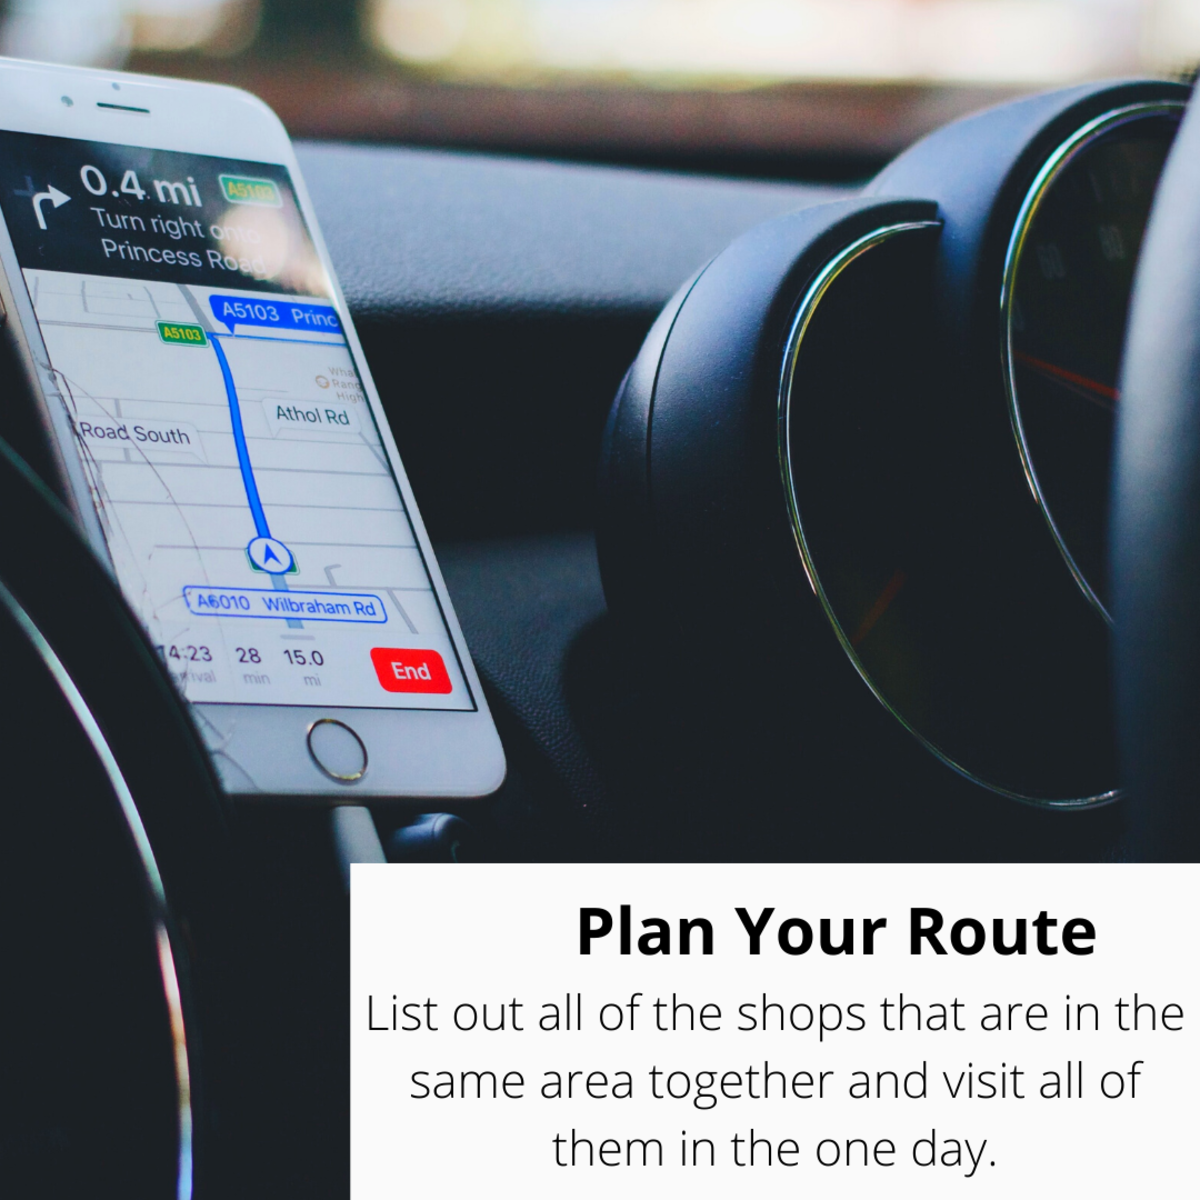 Plan your route in advance.